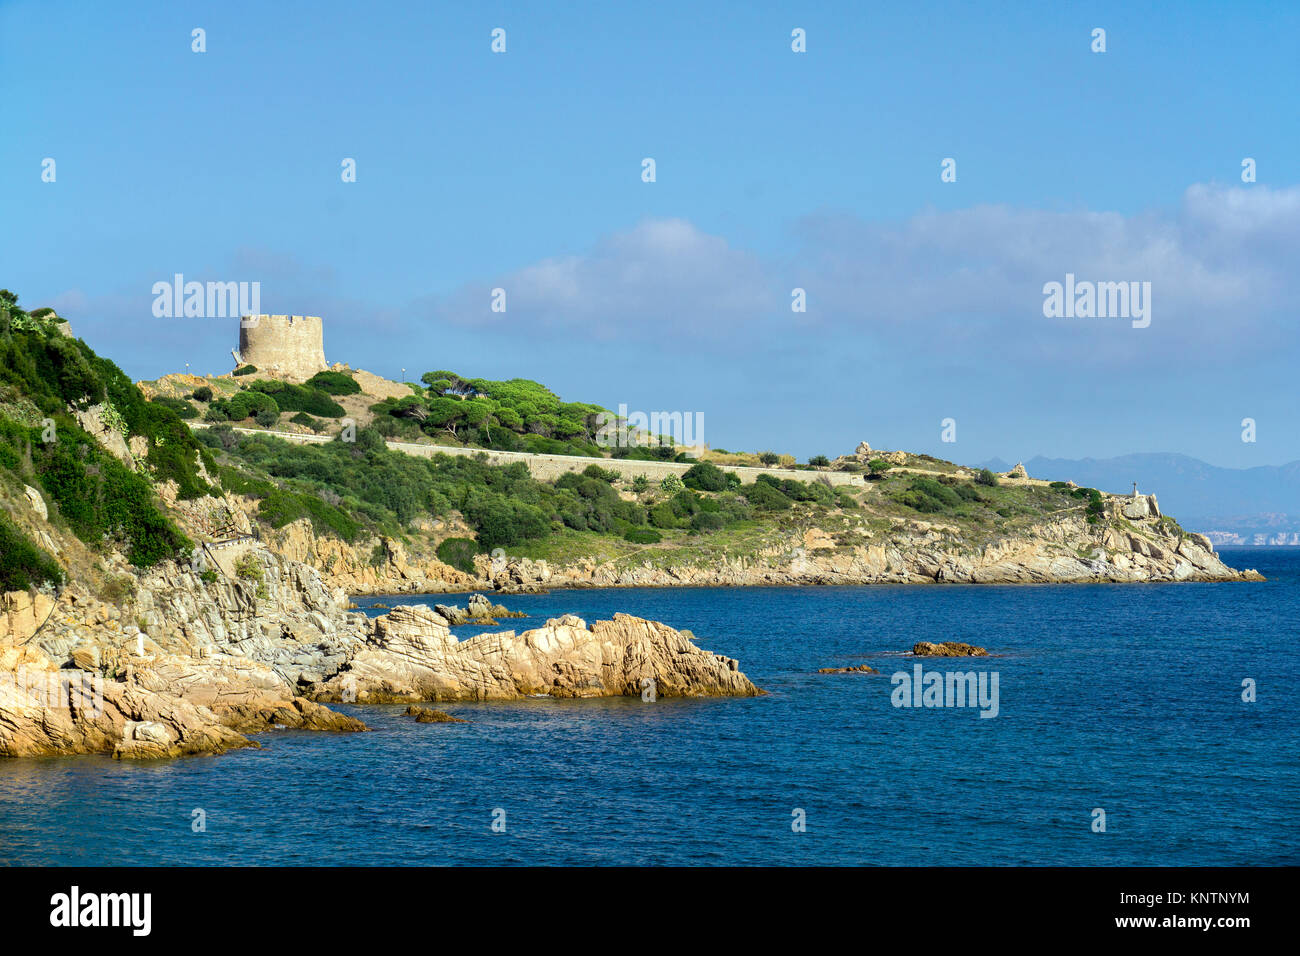 Torre di Longonsardo, Langosardo tower at the coast of  Santa Teresa di Gallura, Sardinia, Italy, Mediterranean - Stock Image